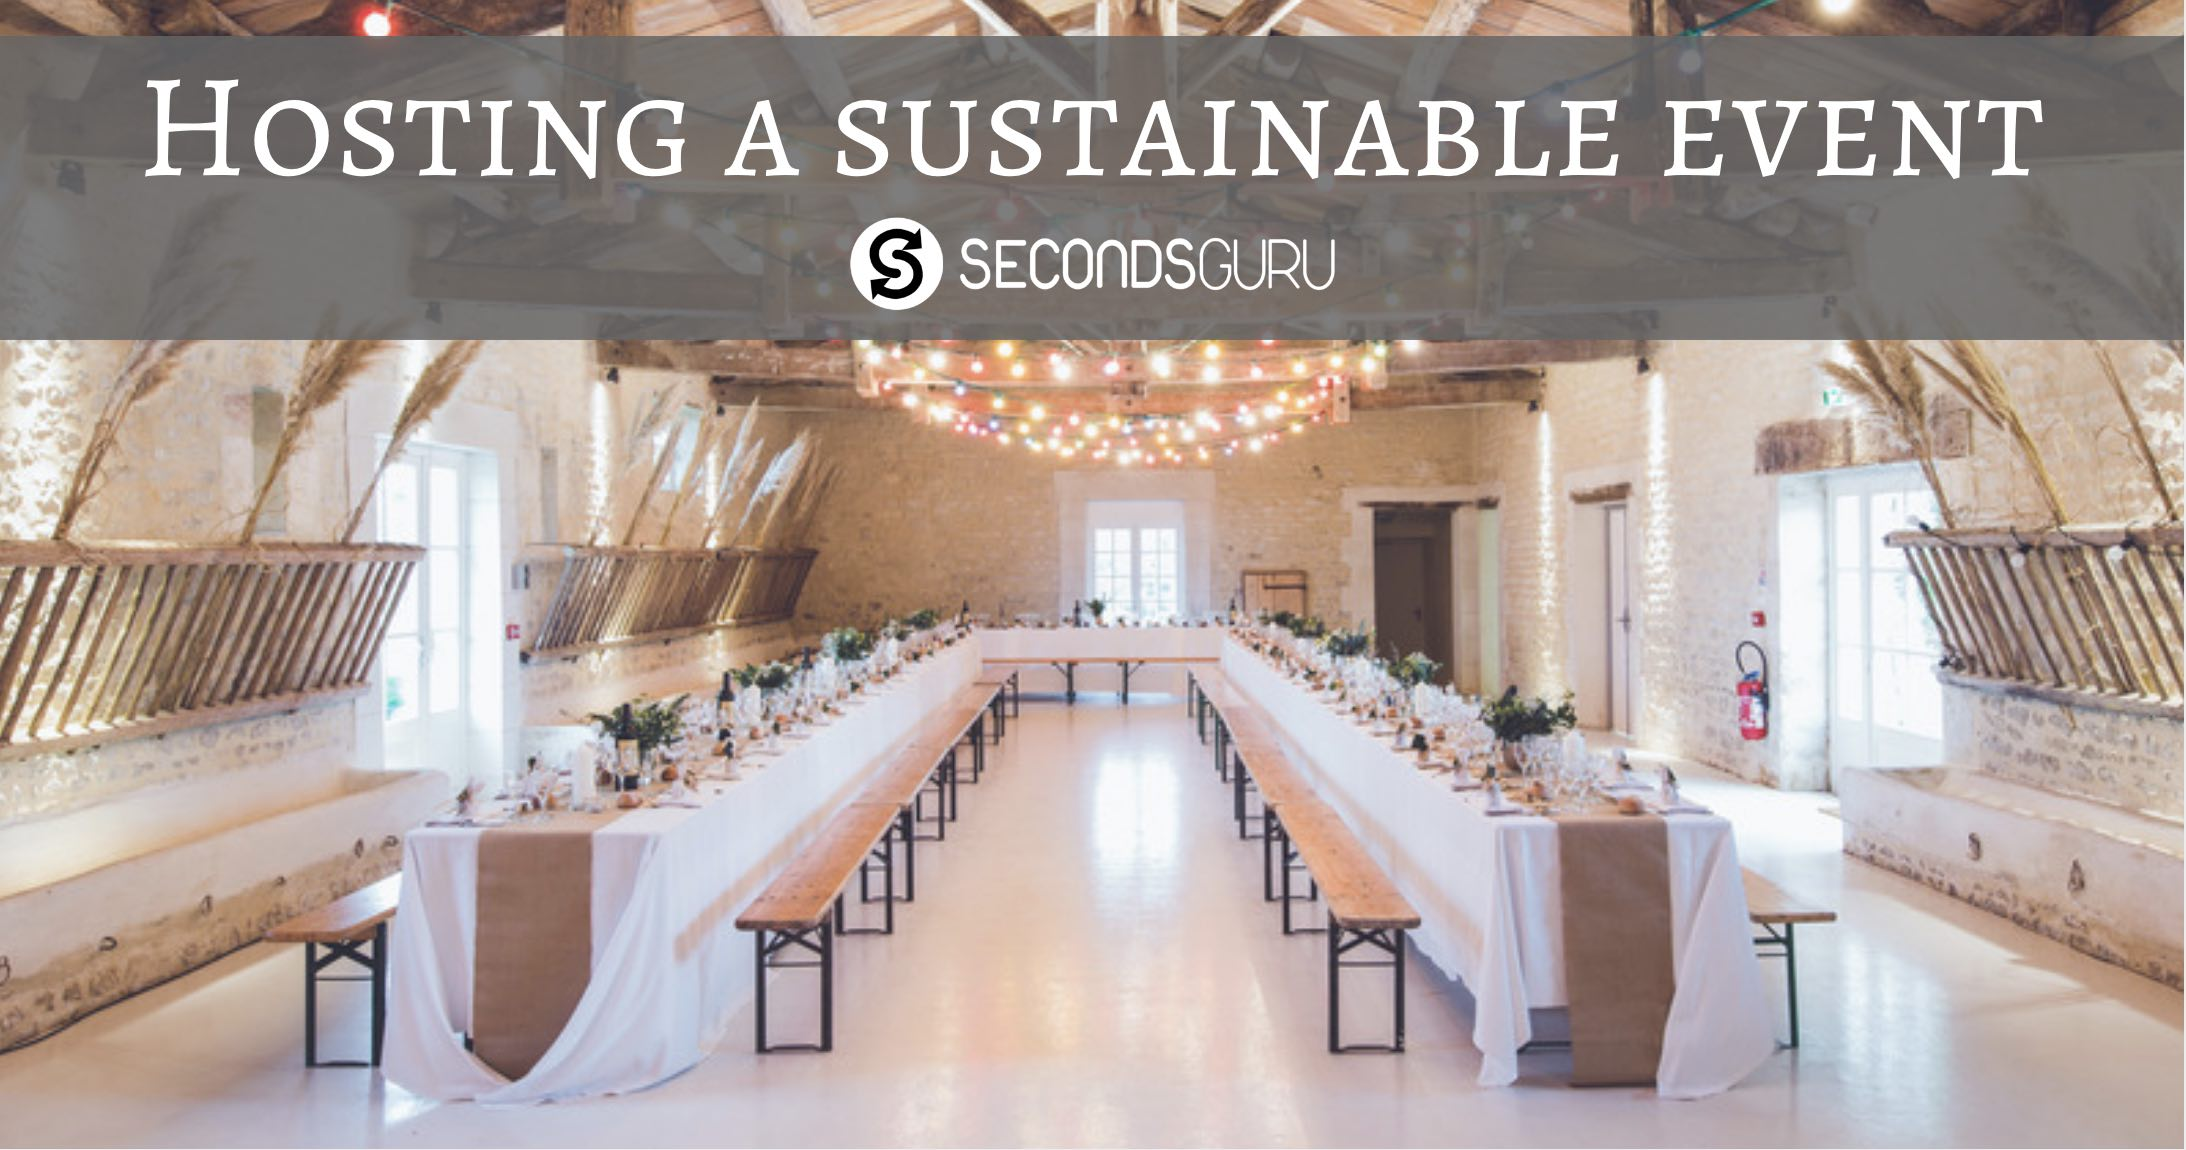 host a sustainable event